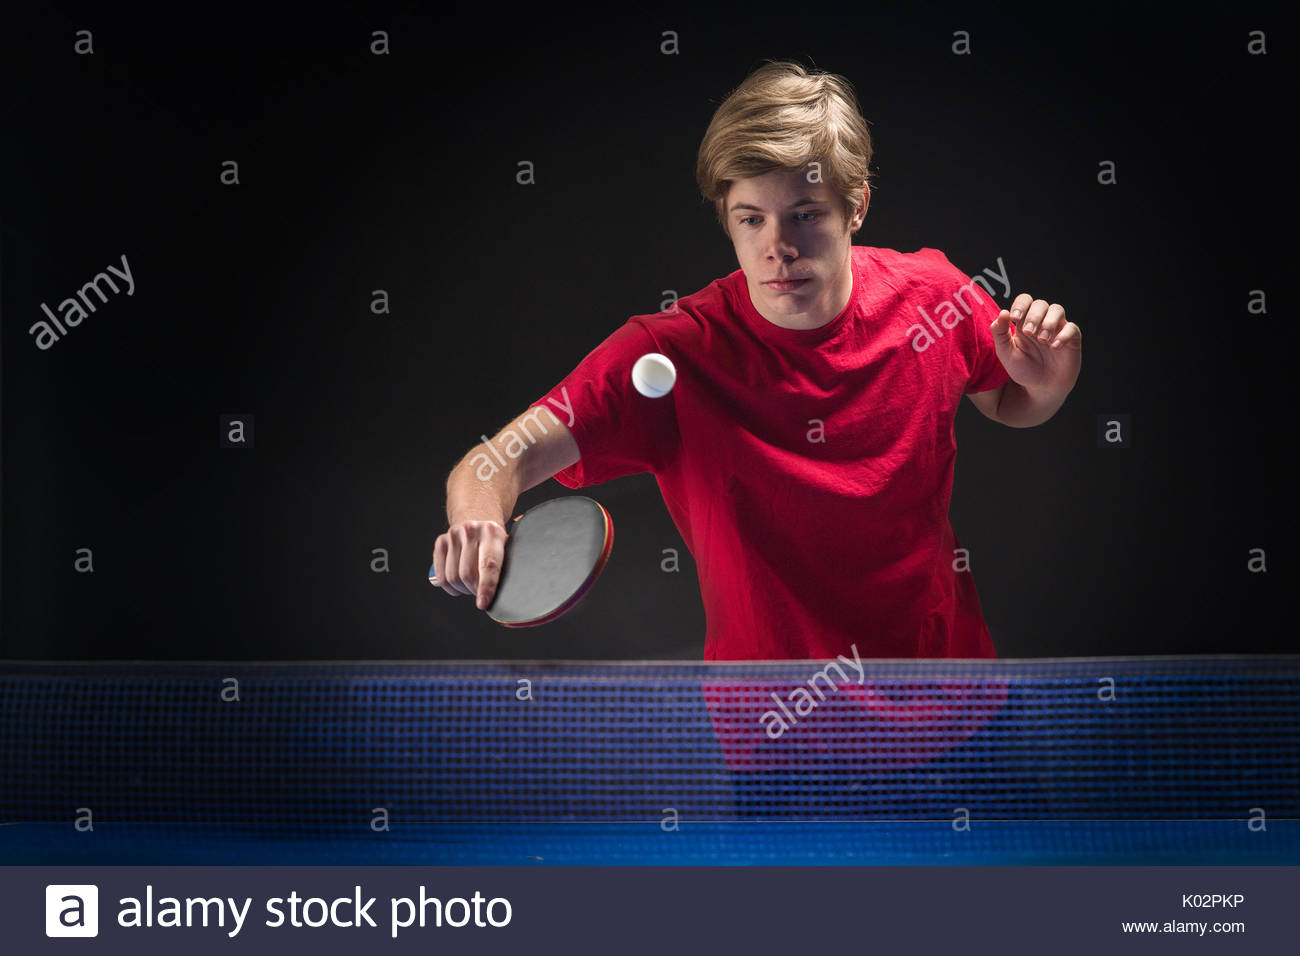 young man tennis player in play on black background Stock Photo 1300x956